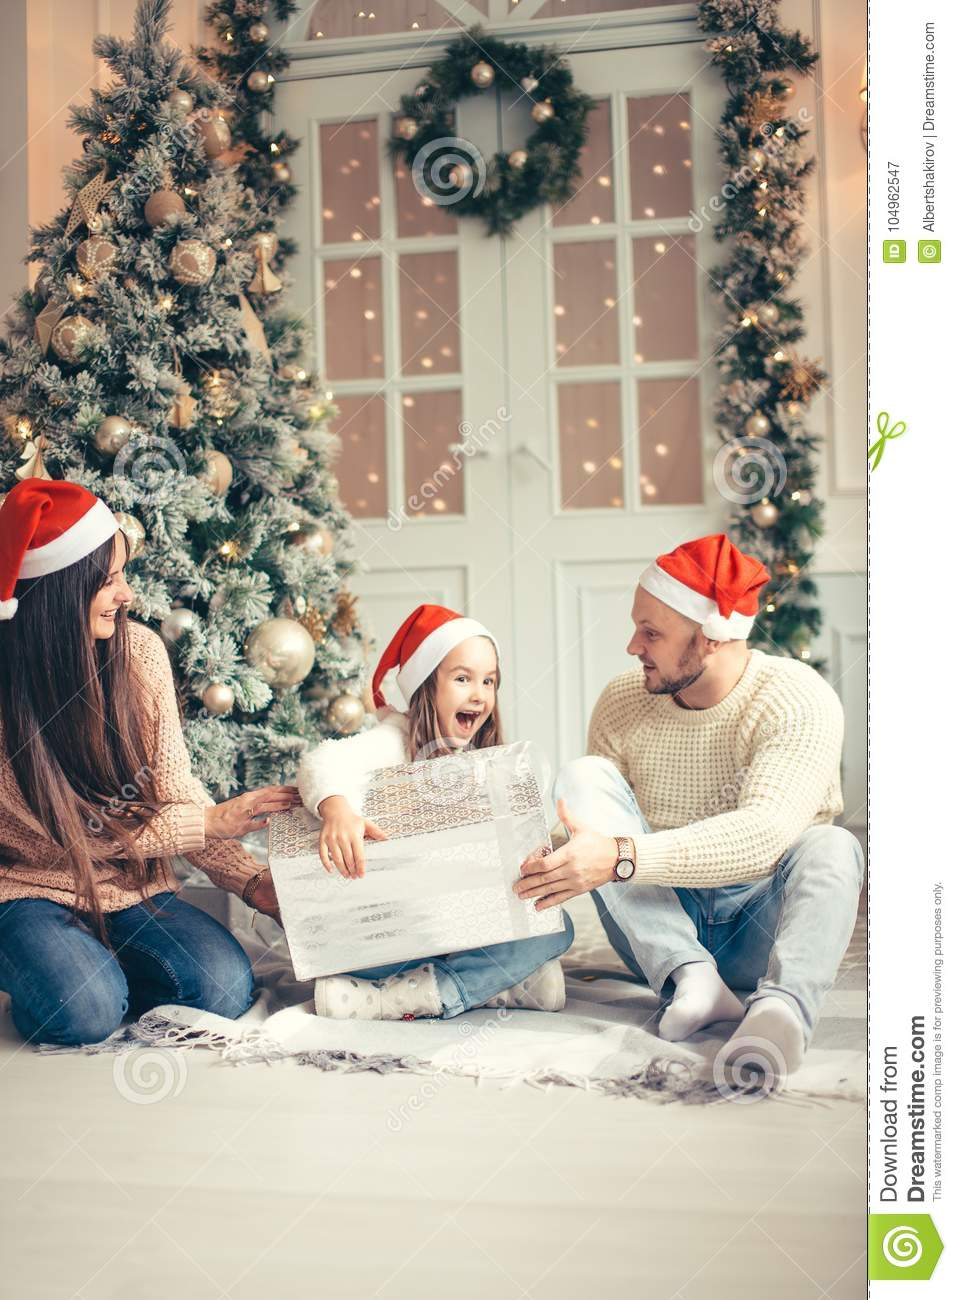 Christmas gifts for parents from adult kids